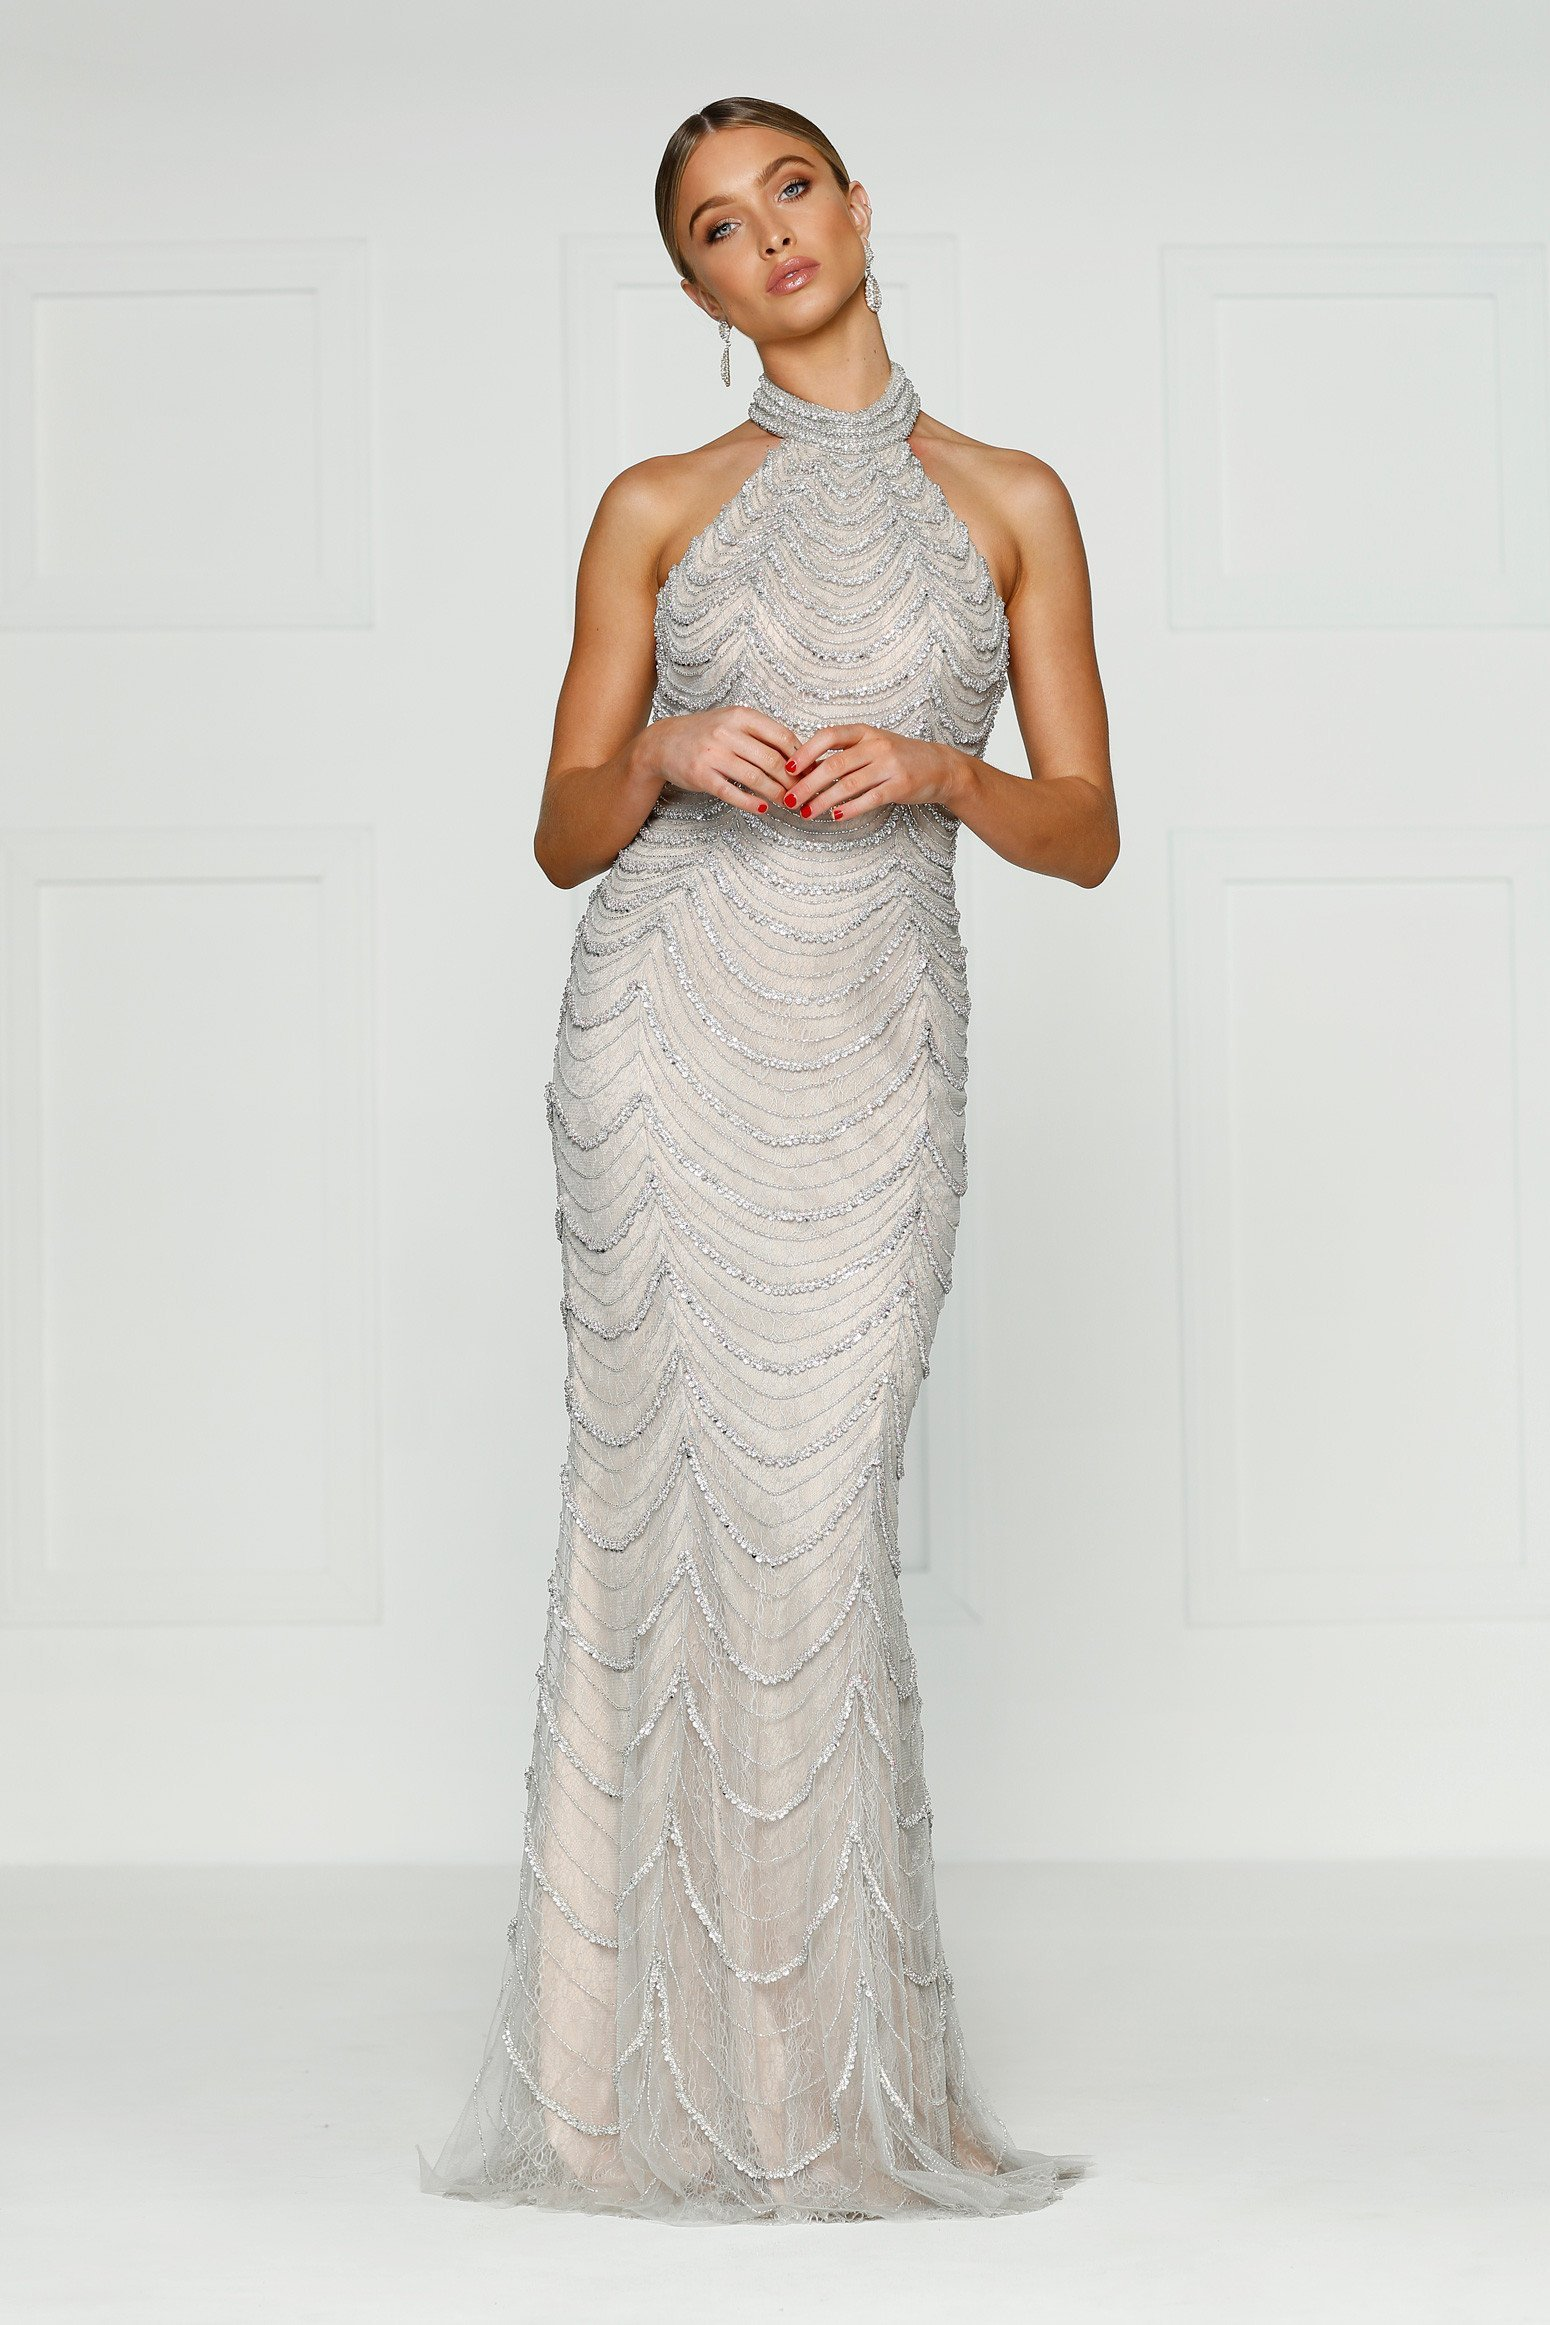 You Can Wear A Silver Dress on Your Wedding Day — Here\'s How ...